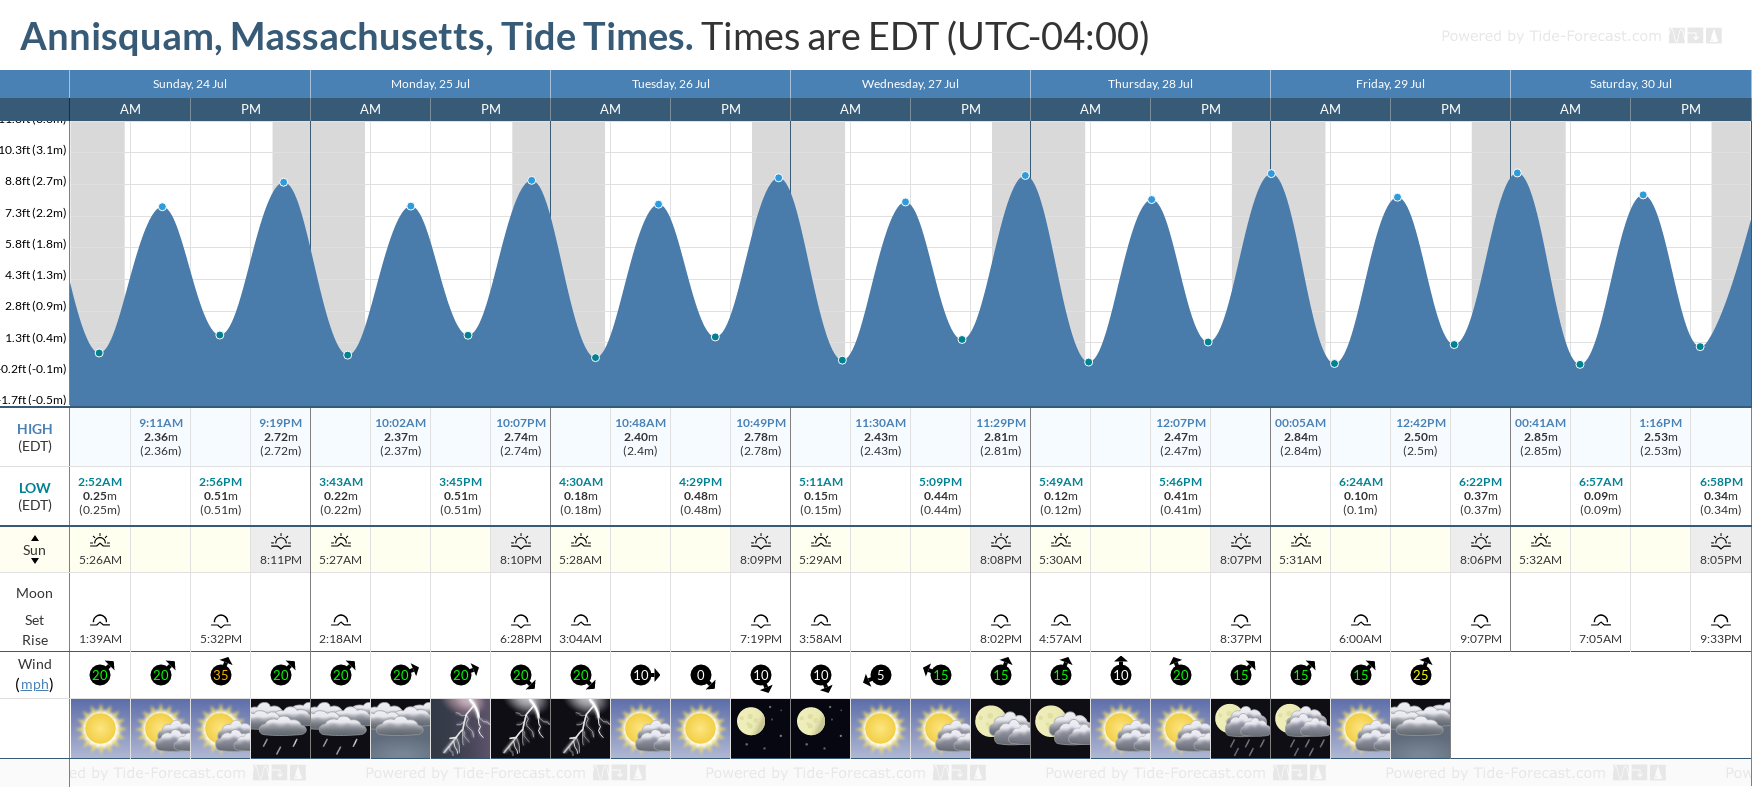 Annisquam, Massachusetts Tide Chart including high and low tide tide times for the next 7 days